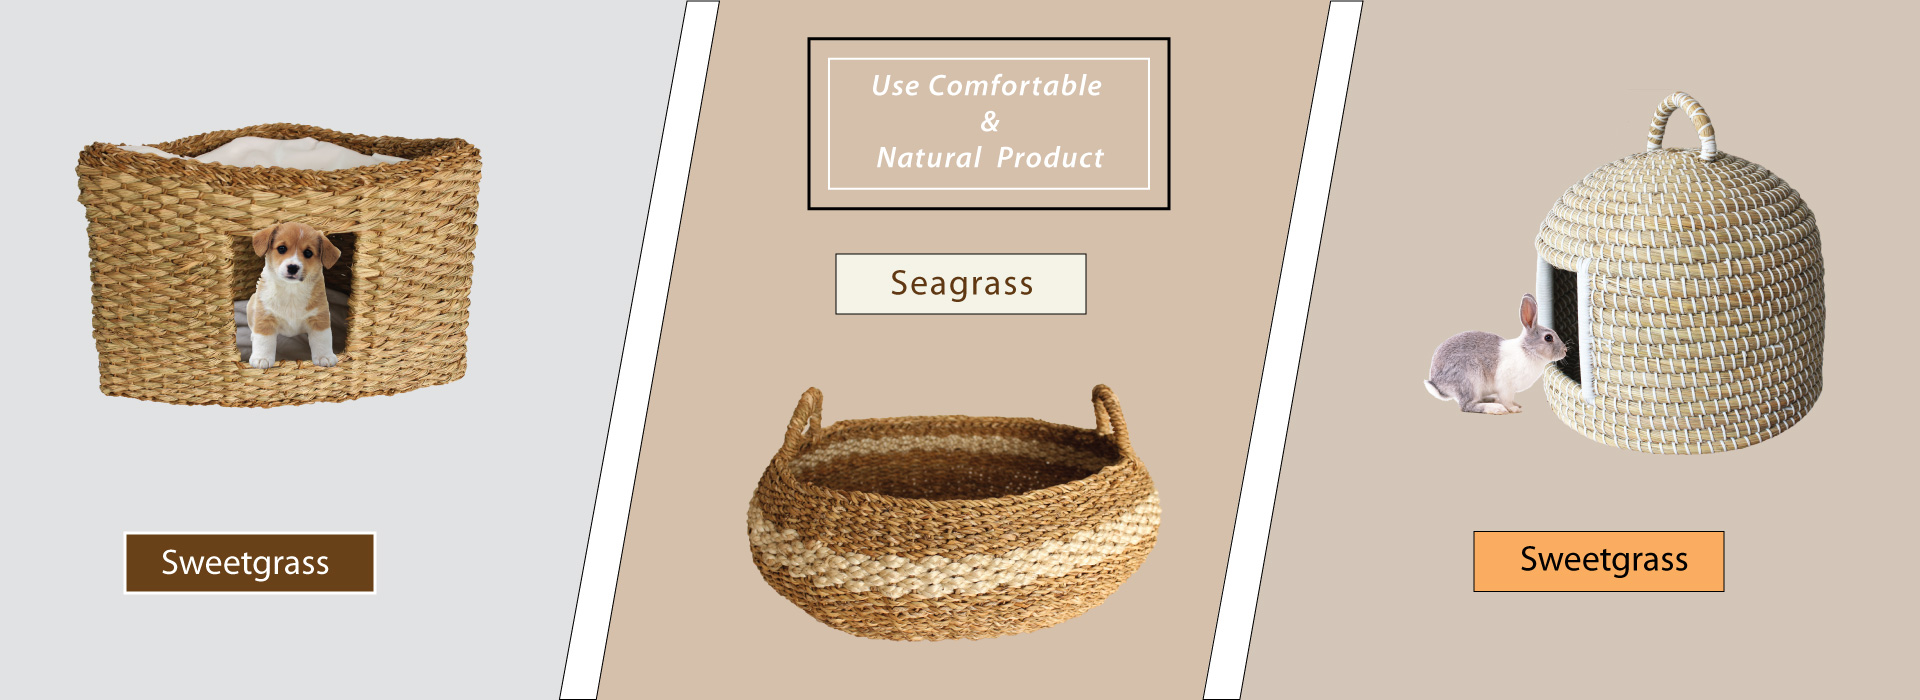 Use Eco-Friendly Product, Save The Earth